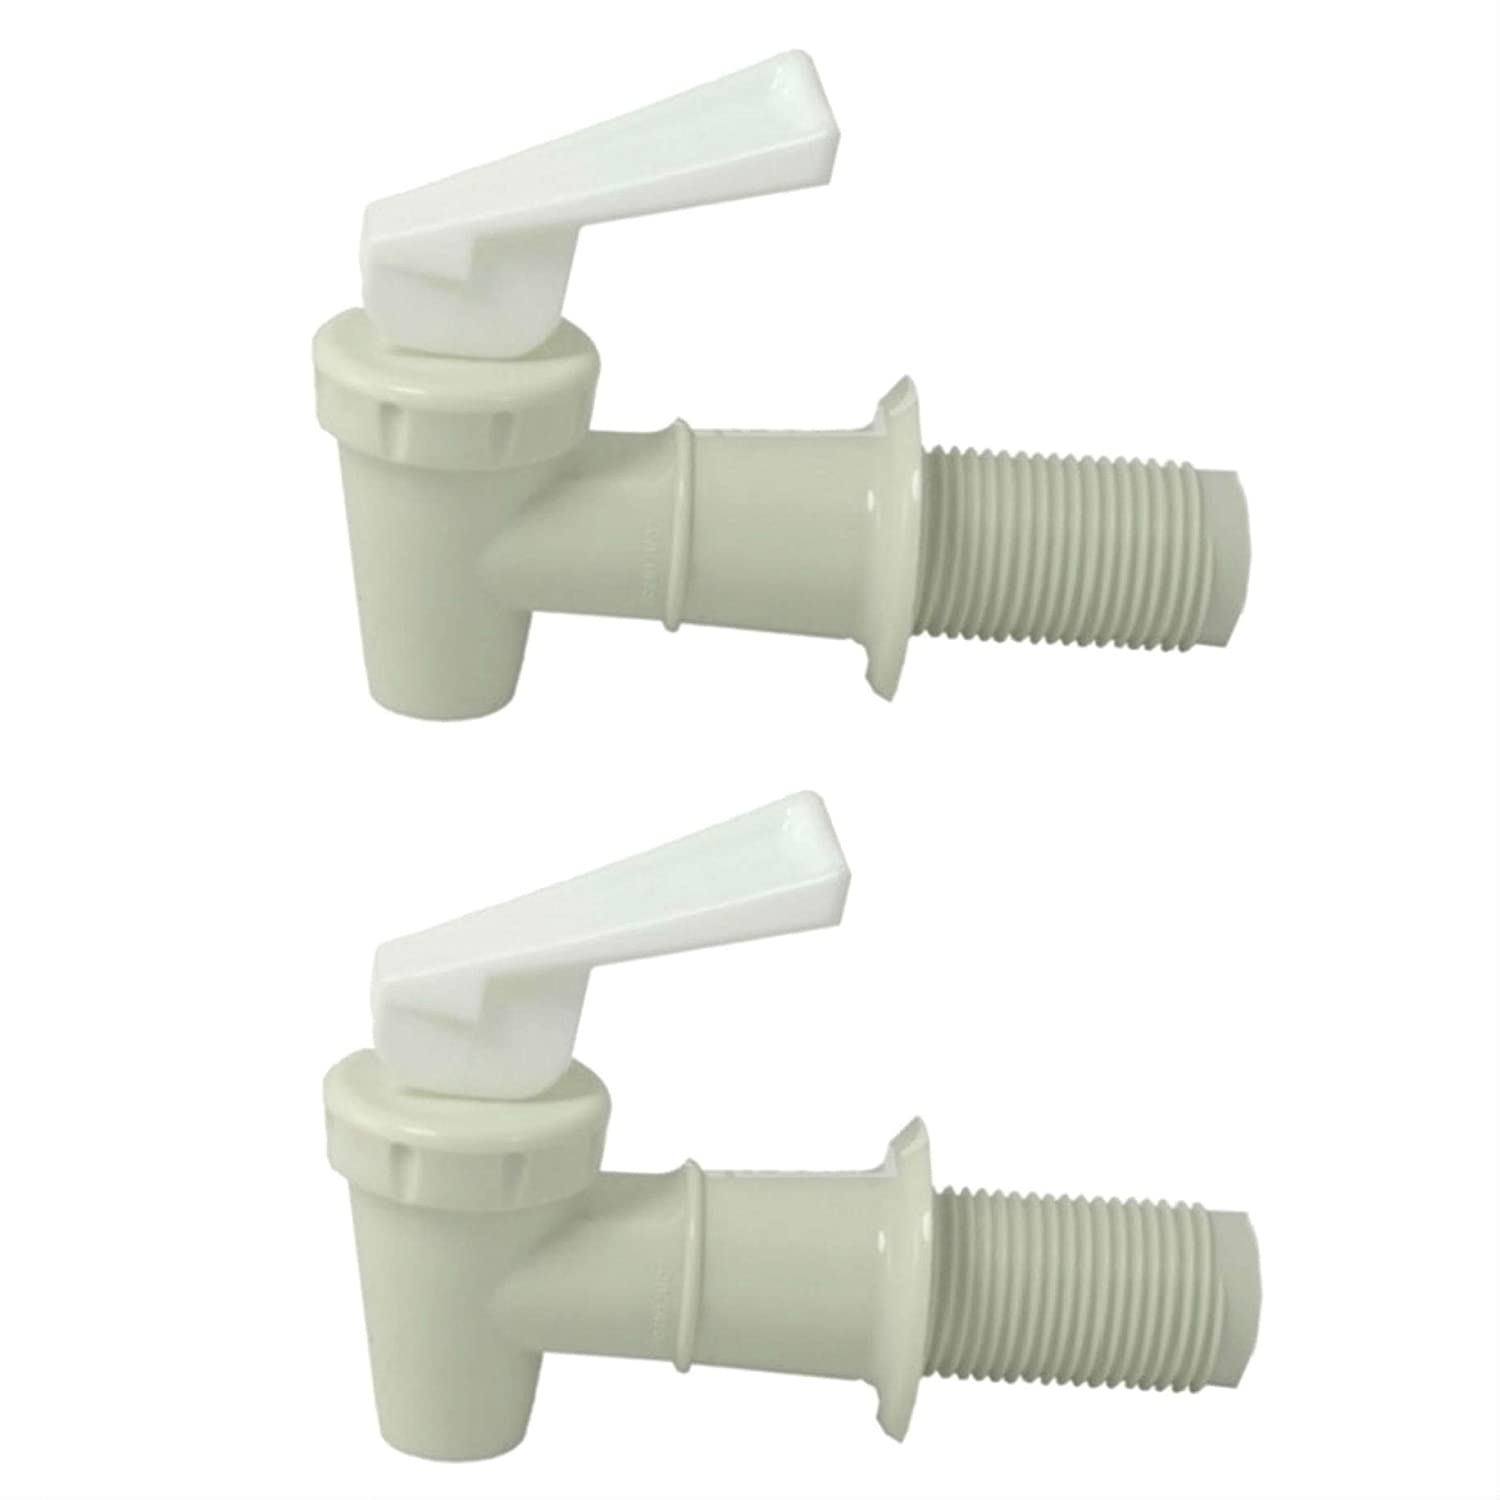 Plastic Faucet Twin-pack, White, Spigot (3/4 Inch), BPA Free, Water/ Beverage Dispenser, Gravity Feed, Made USA, Lab Faucet, FDA - Approved, with Washers and Nuts